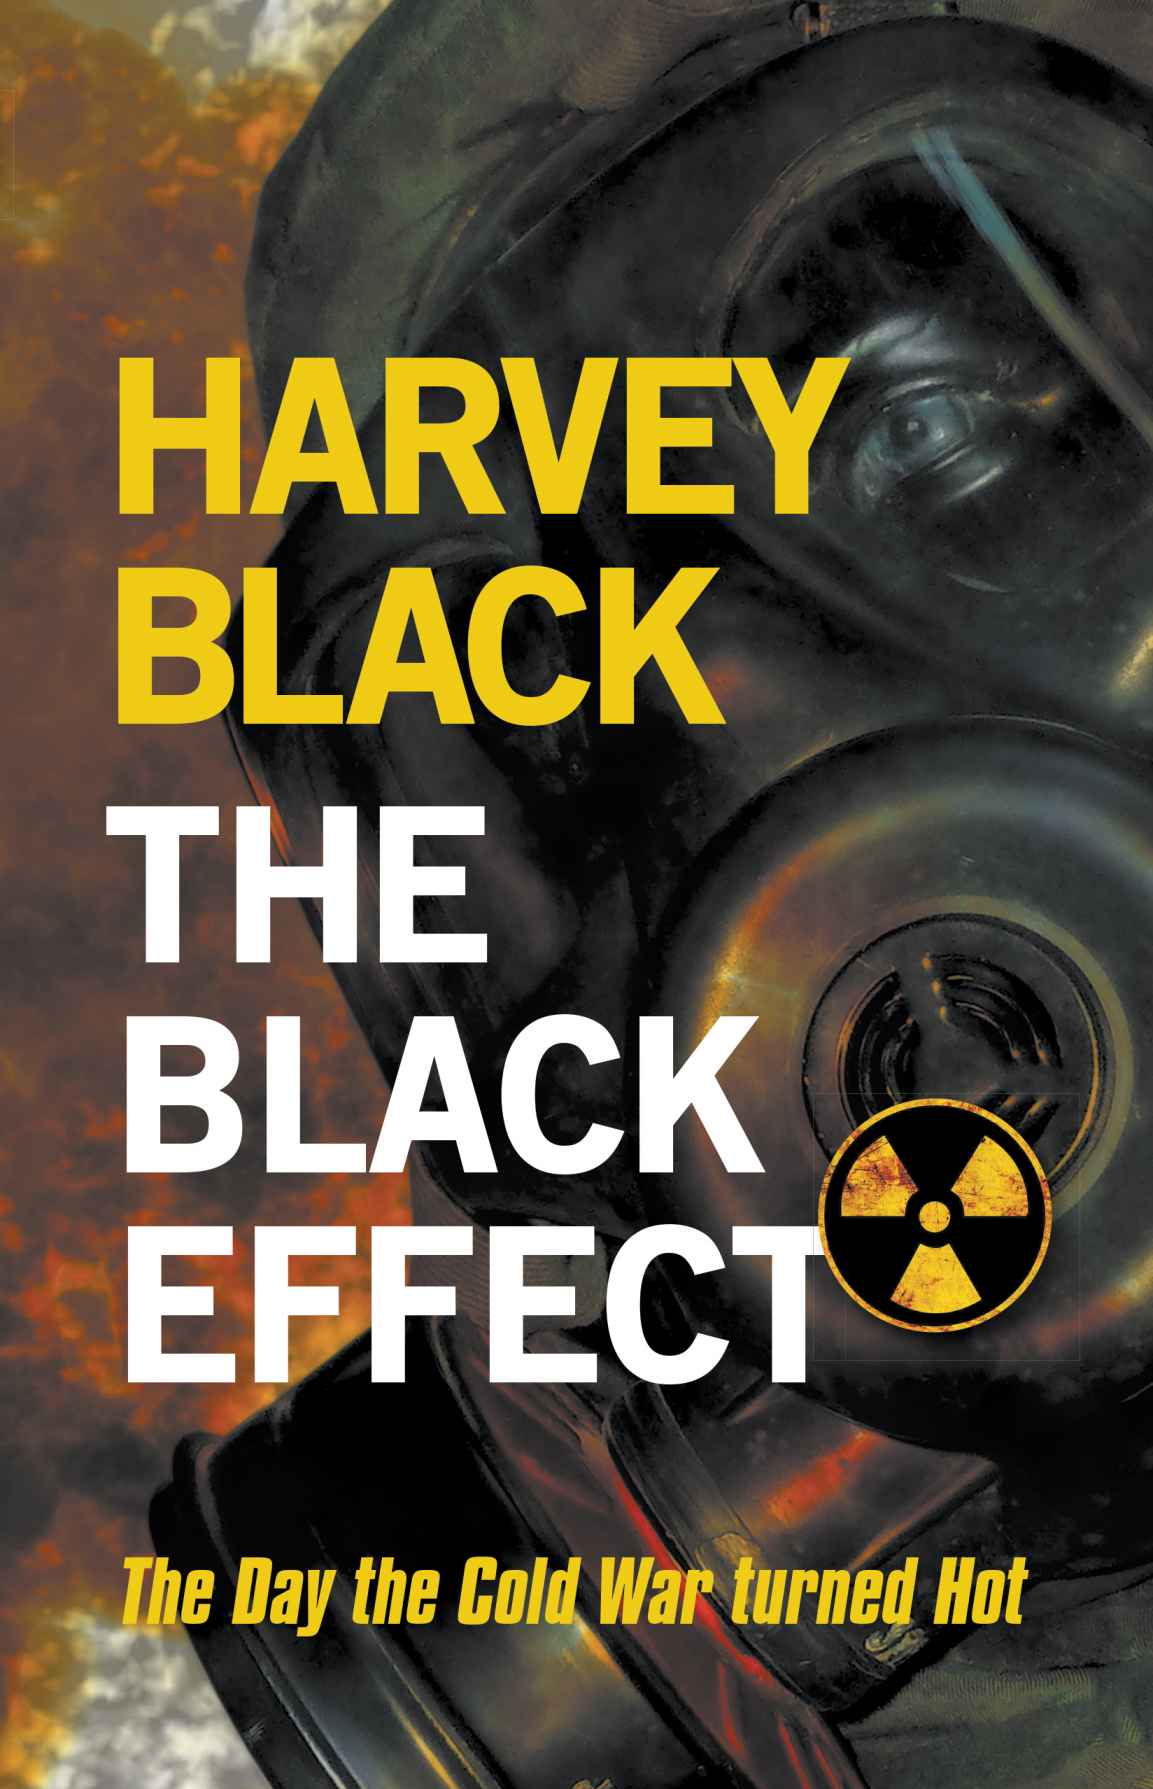 Read Free The Black Effect Cold War Online Book In